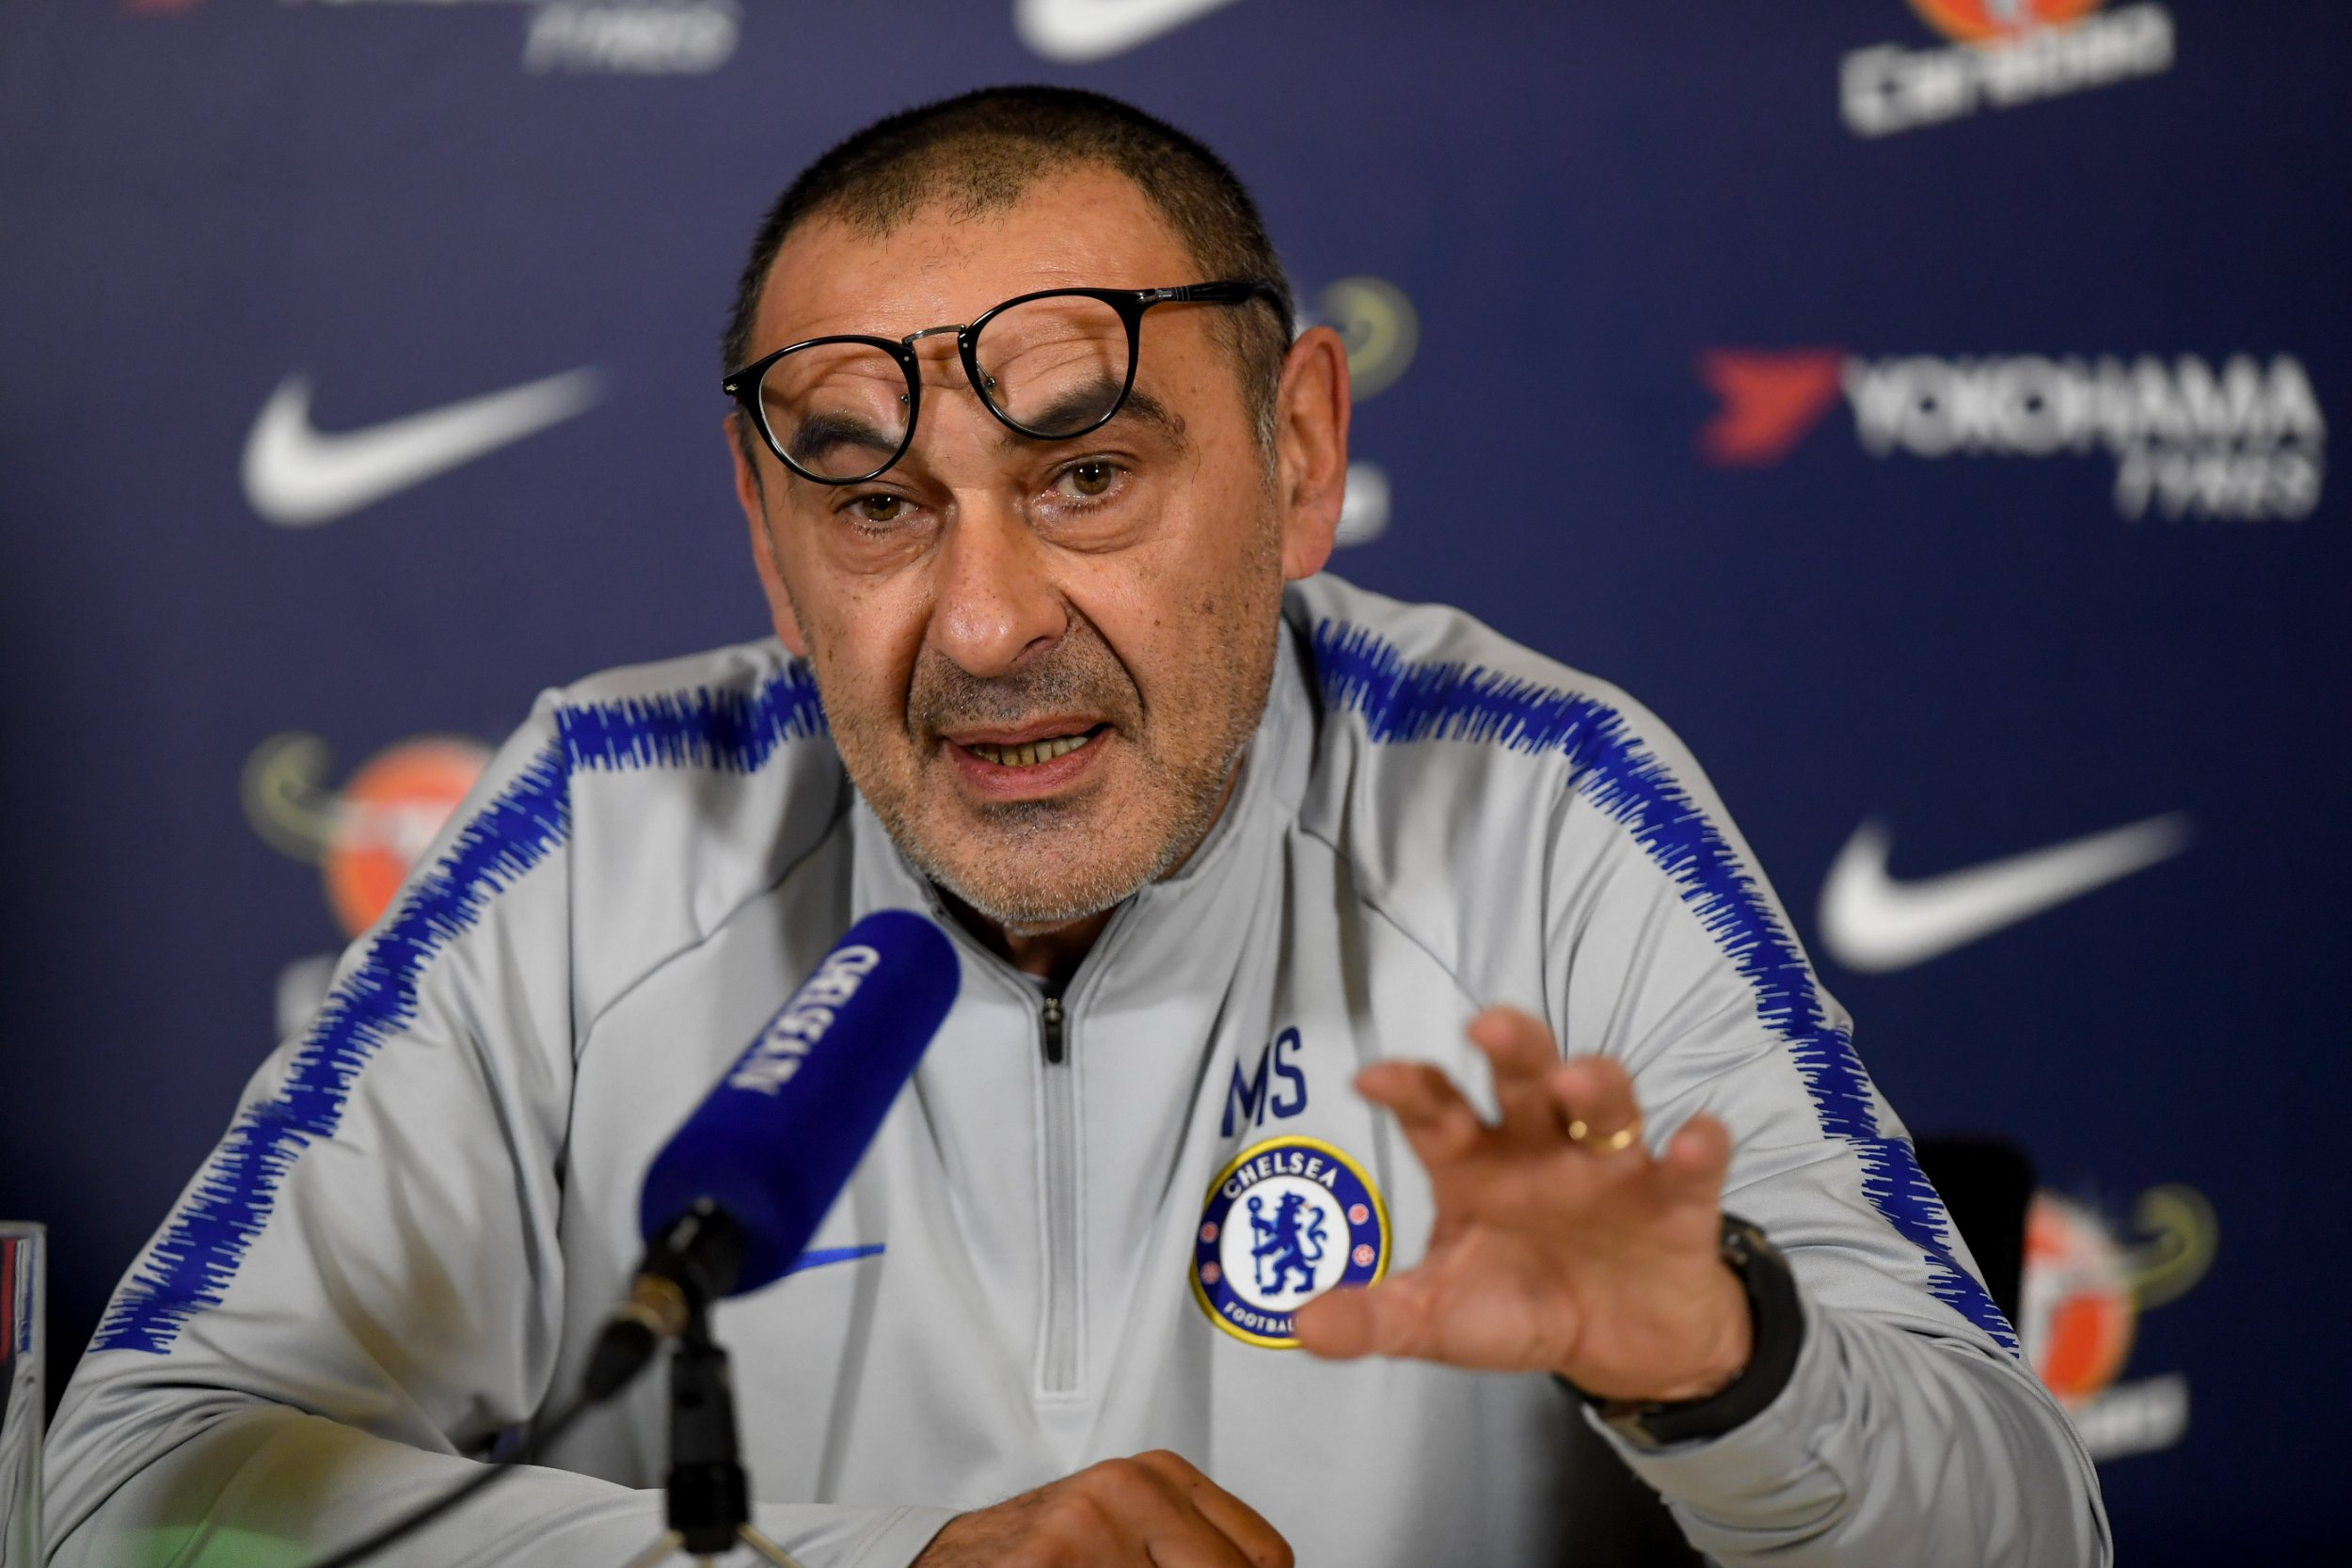 COBHAM, ENGLAND - JANUARY 23: Chelsea manager Maurizio Sarri attends a press conference at Chelsea Training Ground on January 23, 2019 in Cobham, England. (Photo by Darren Walsh/Chelsea FC via Getty Images)